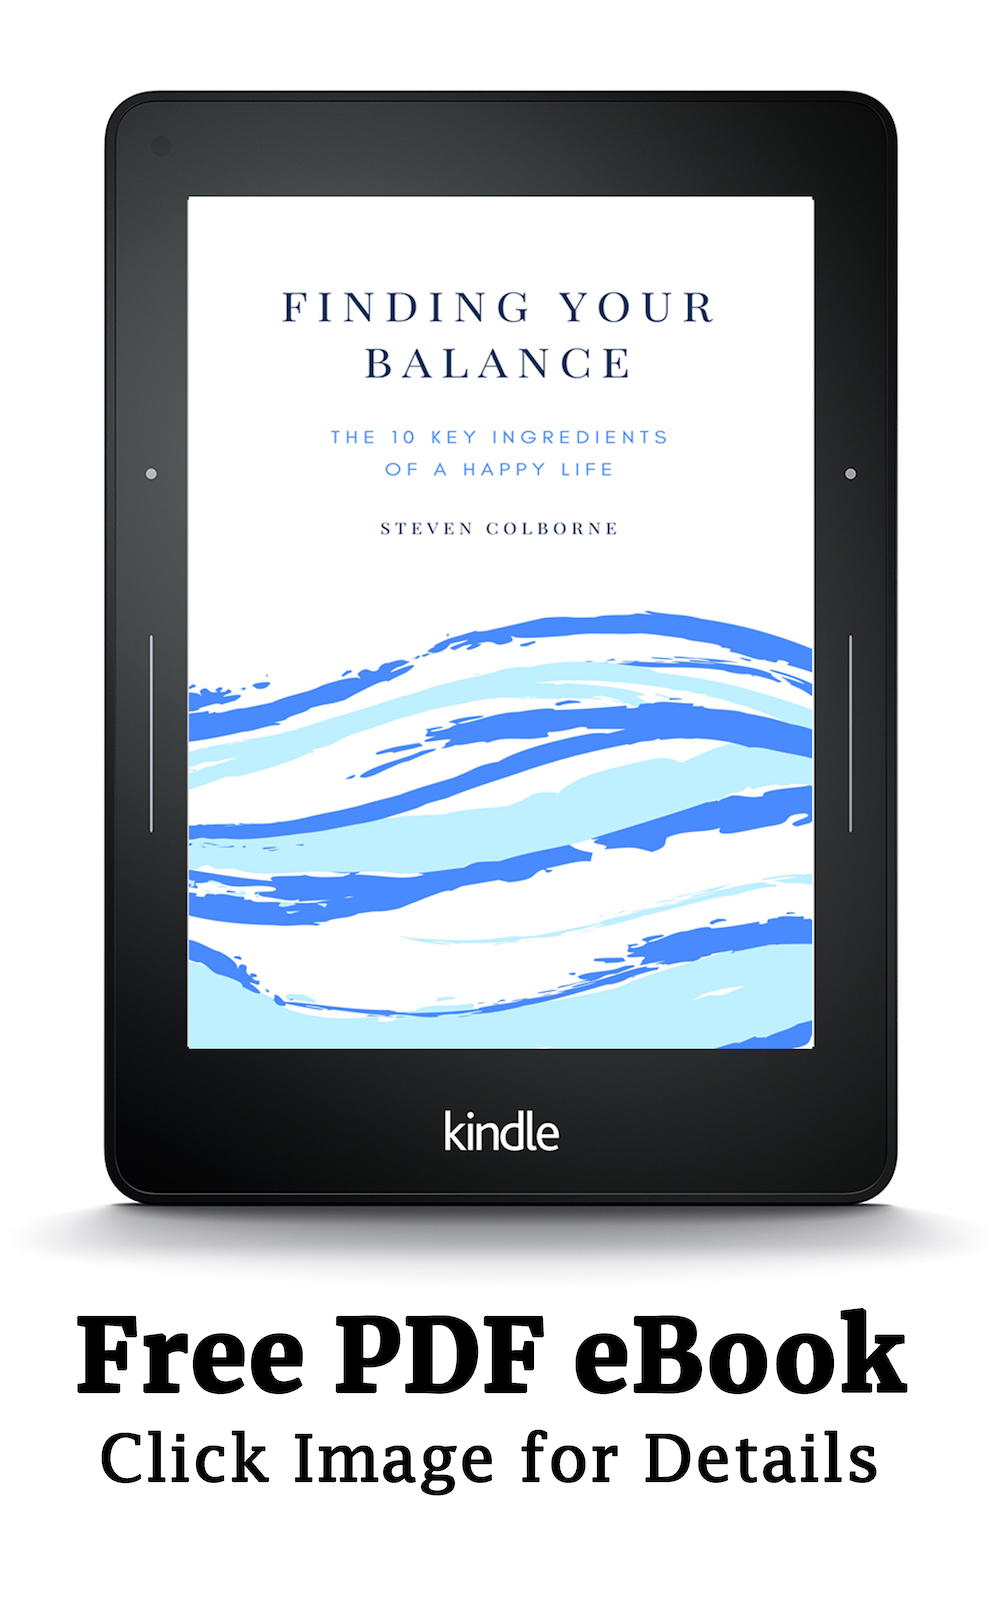 Finding Your Balance free eBook advertisement